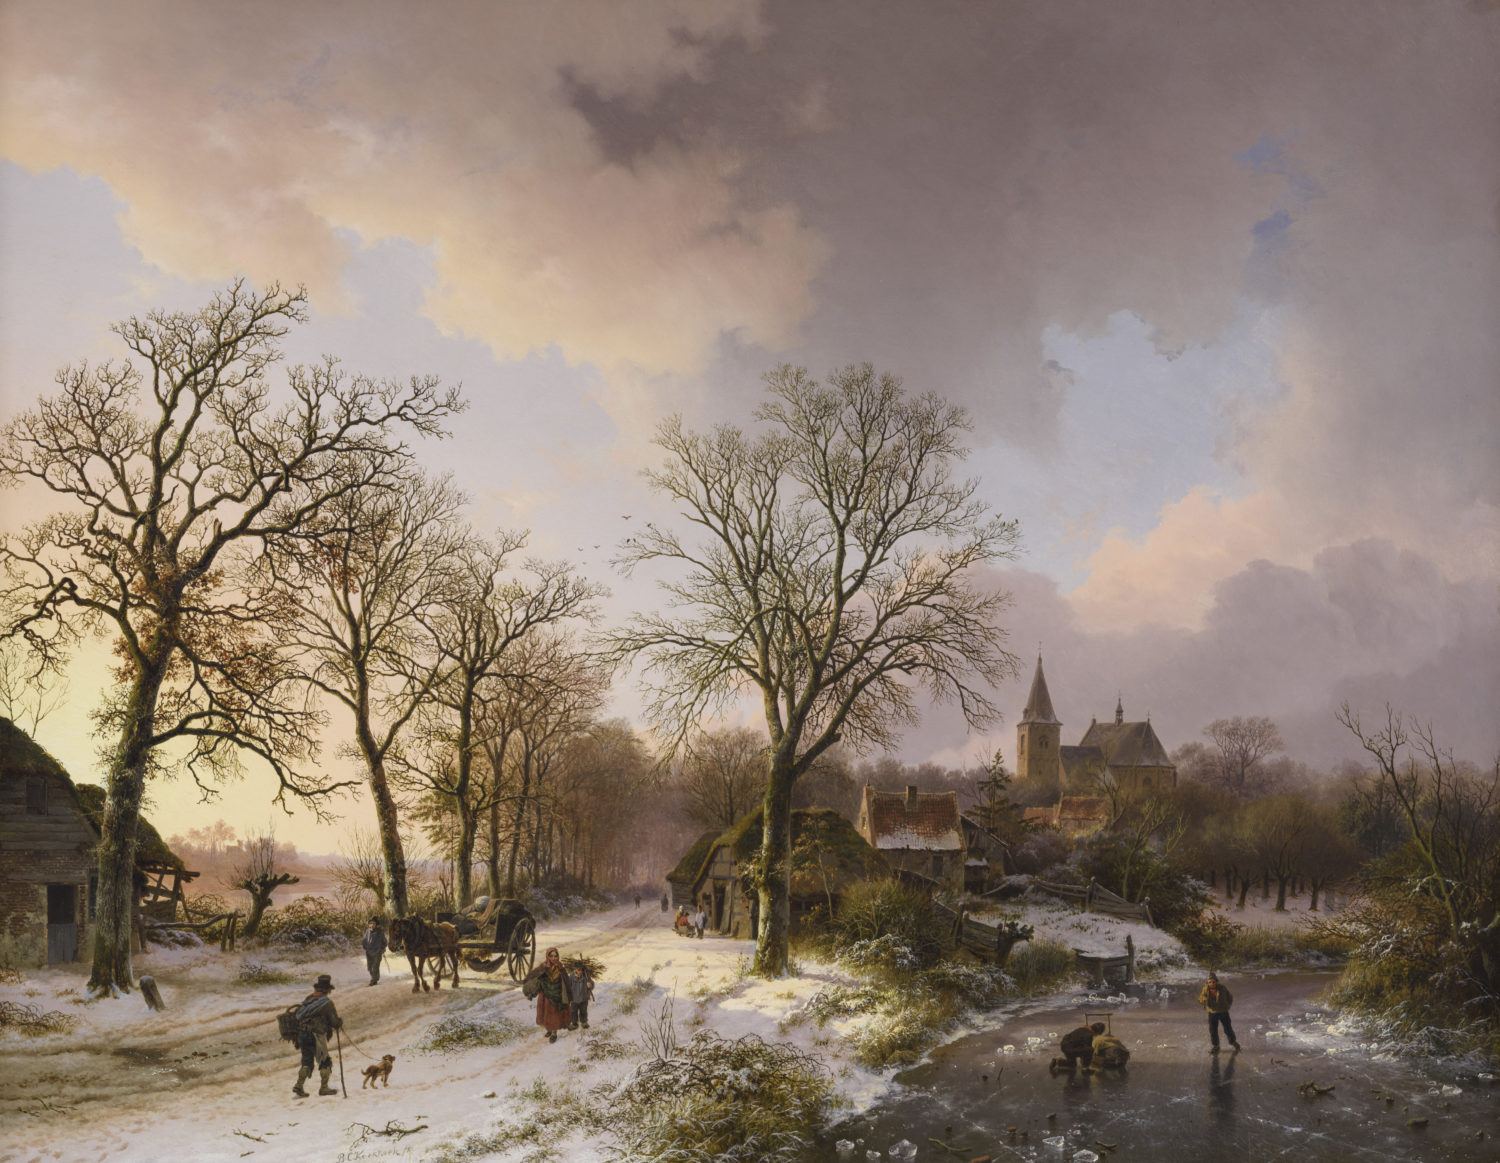 Barend Cornelis Koekkoek | A winter landscape with figures near Bedburg (currently Bedburg-Hau) near Cleves